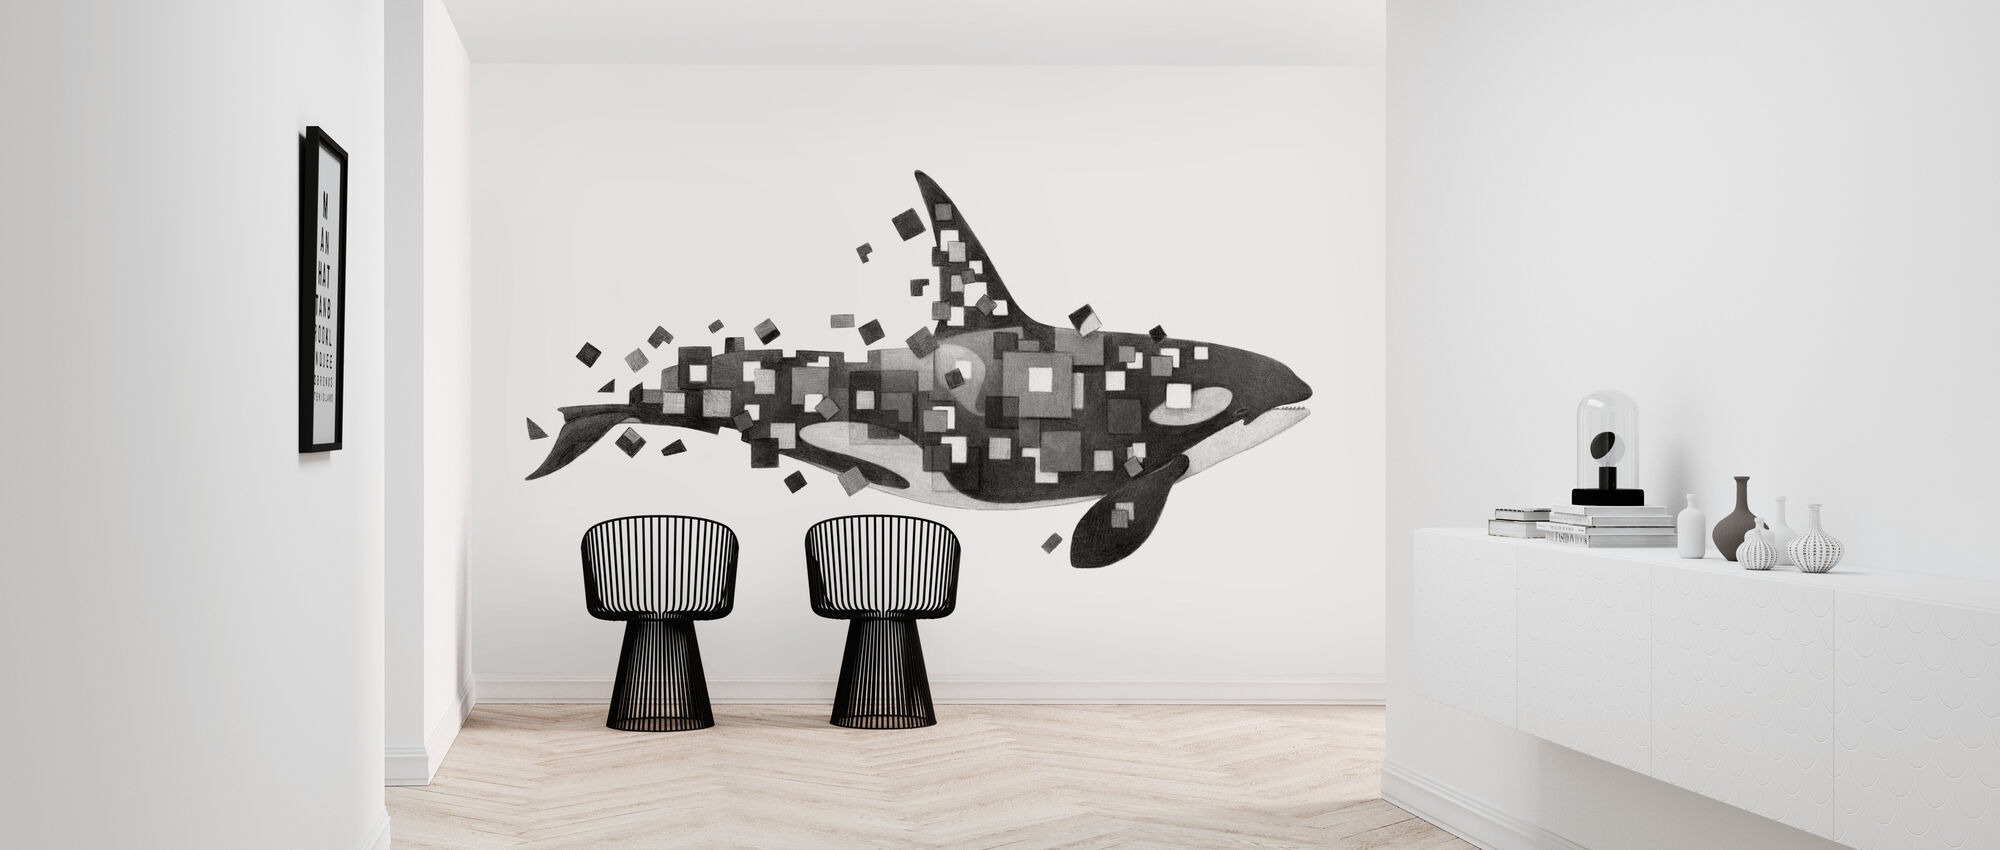 Fractured Killer Whale Grayscale - Wallpaper - Hallway